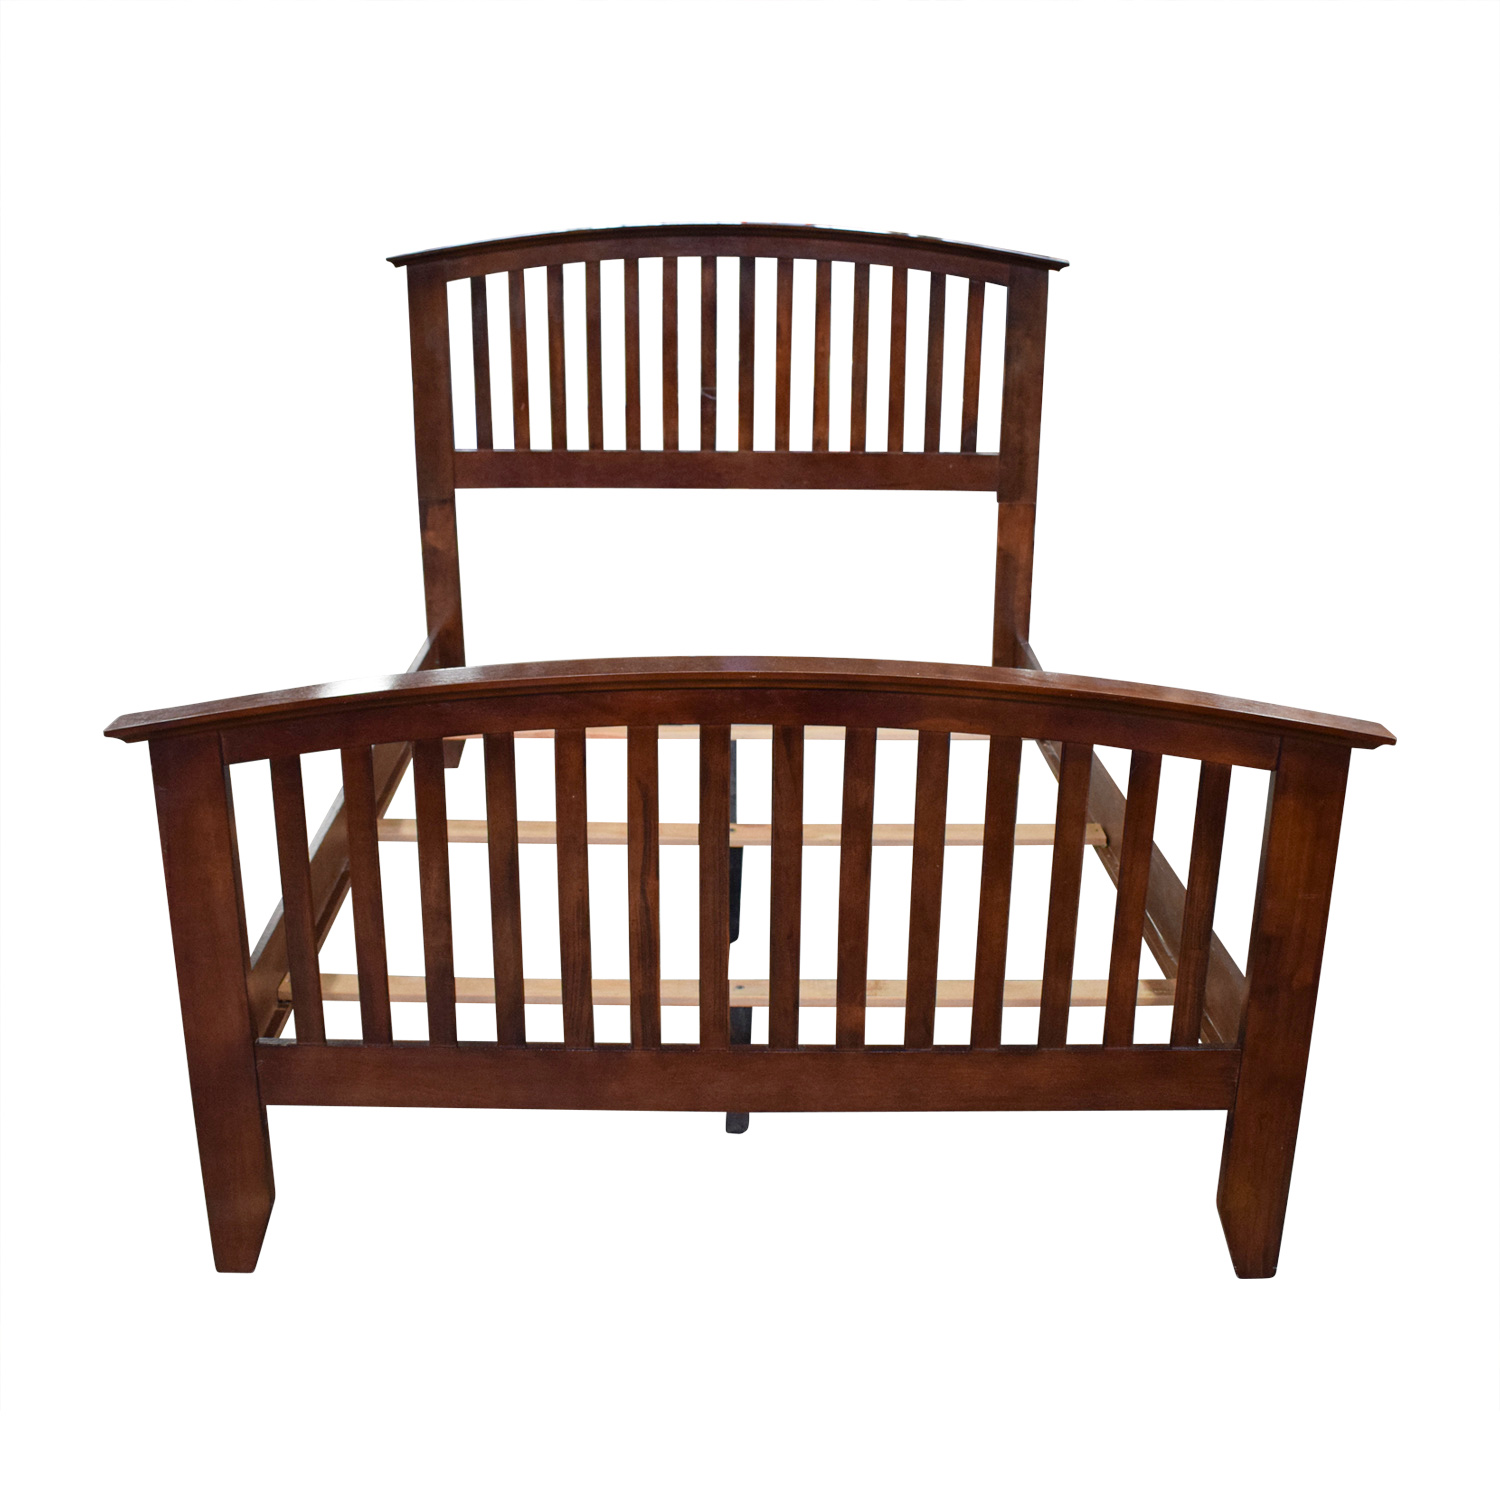 Bobs Furniture Bobs Furniture Wood Caged Full Bed Frame on sale